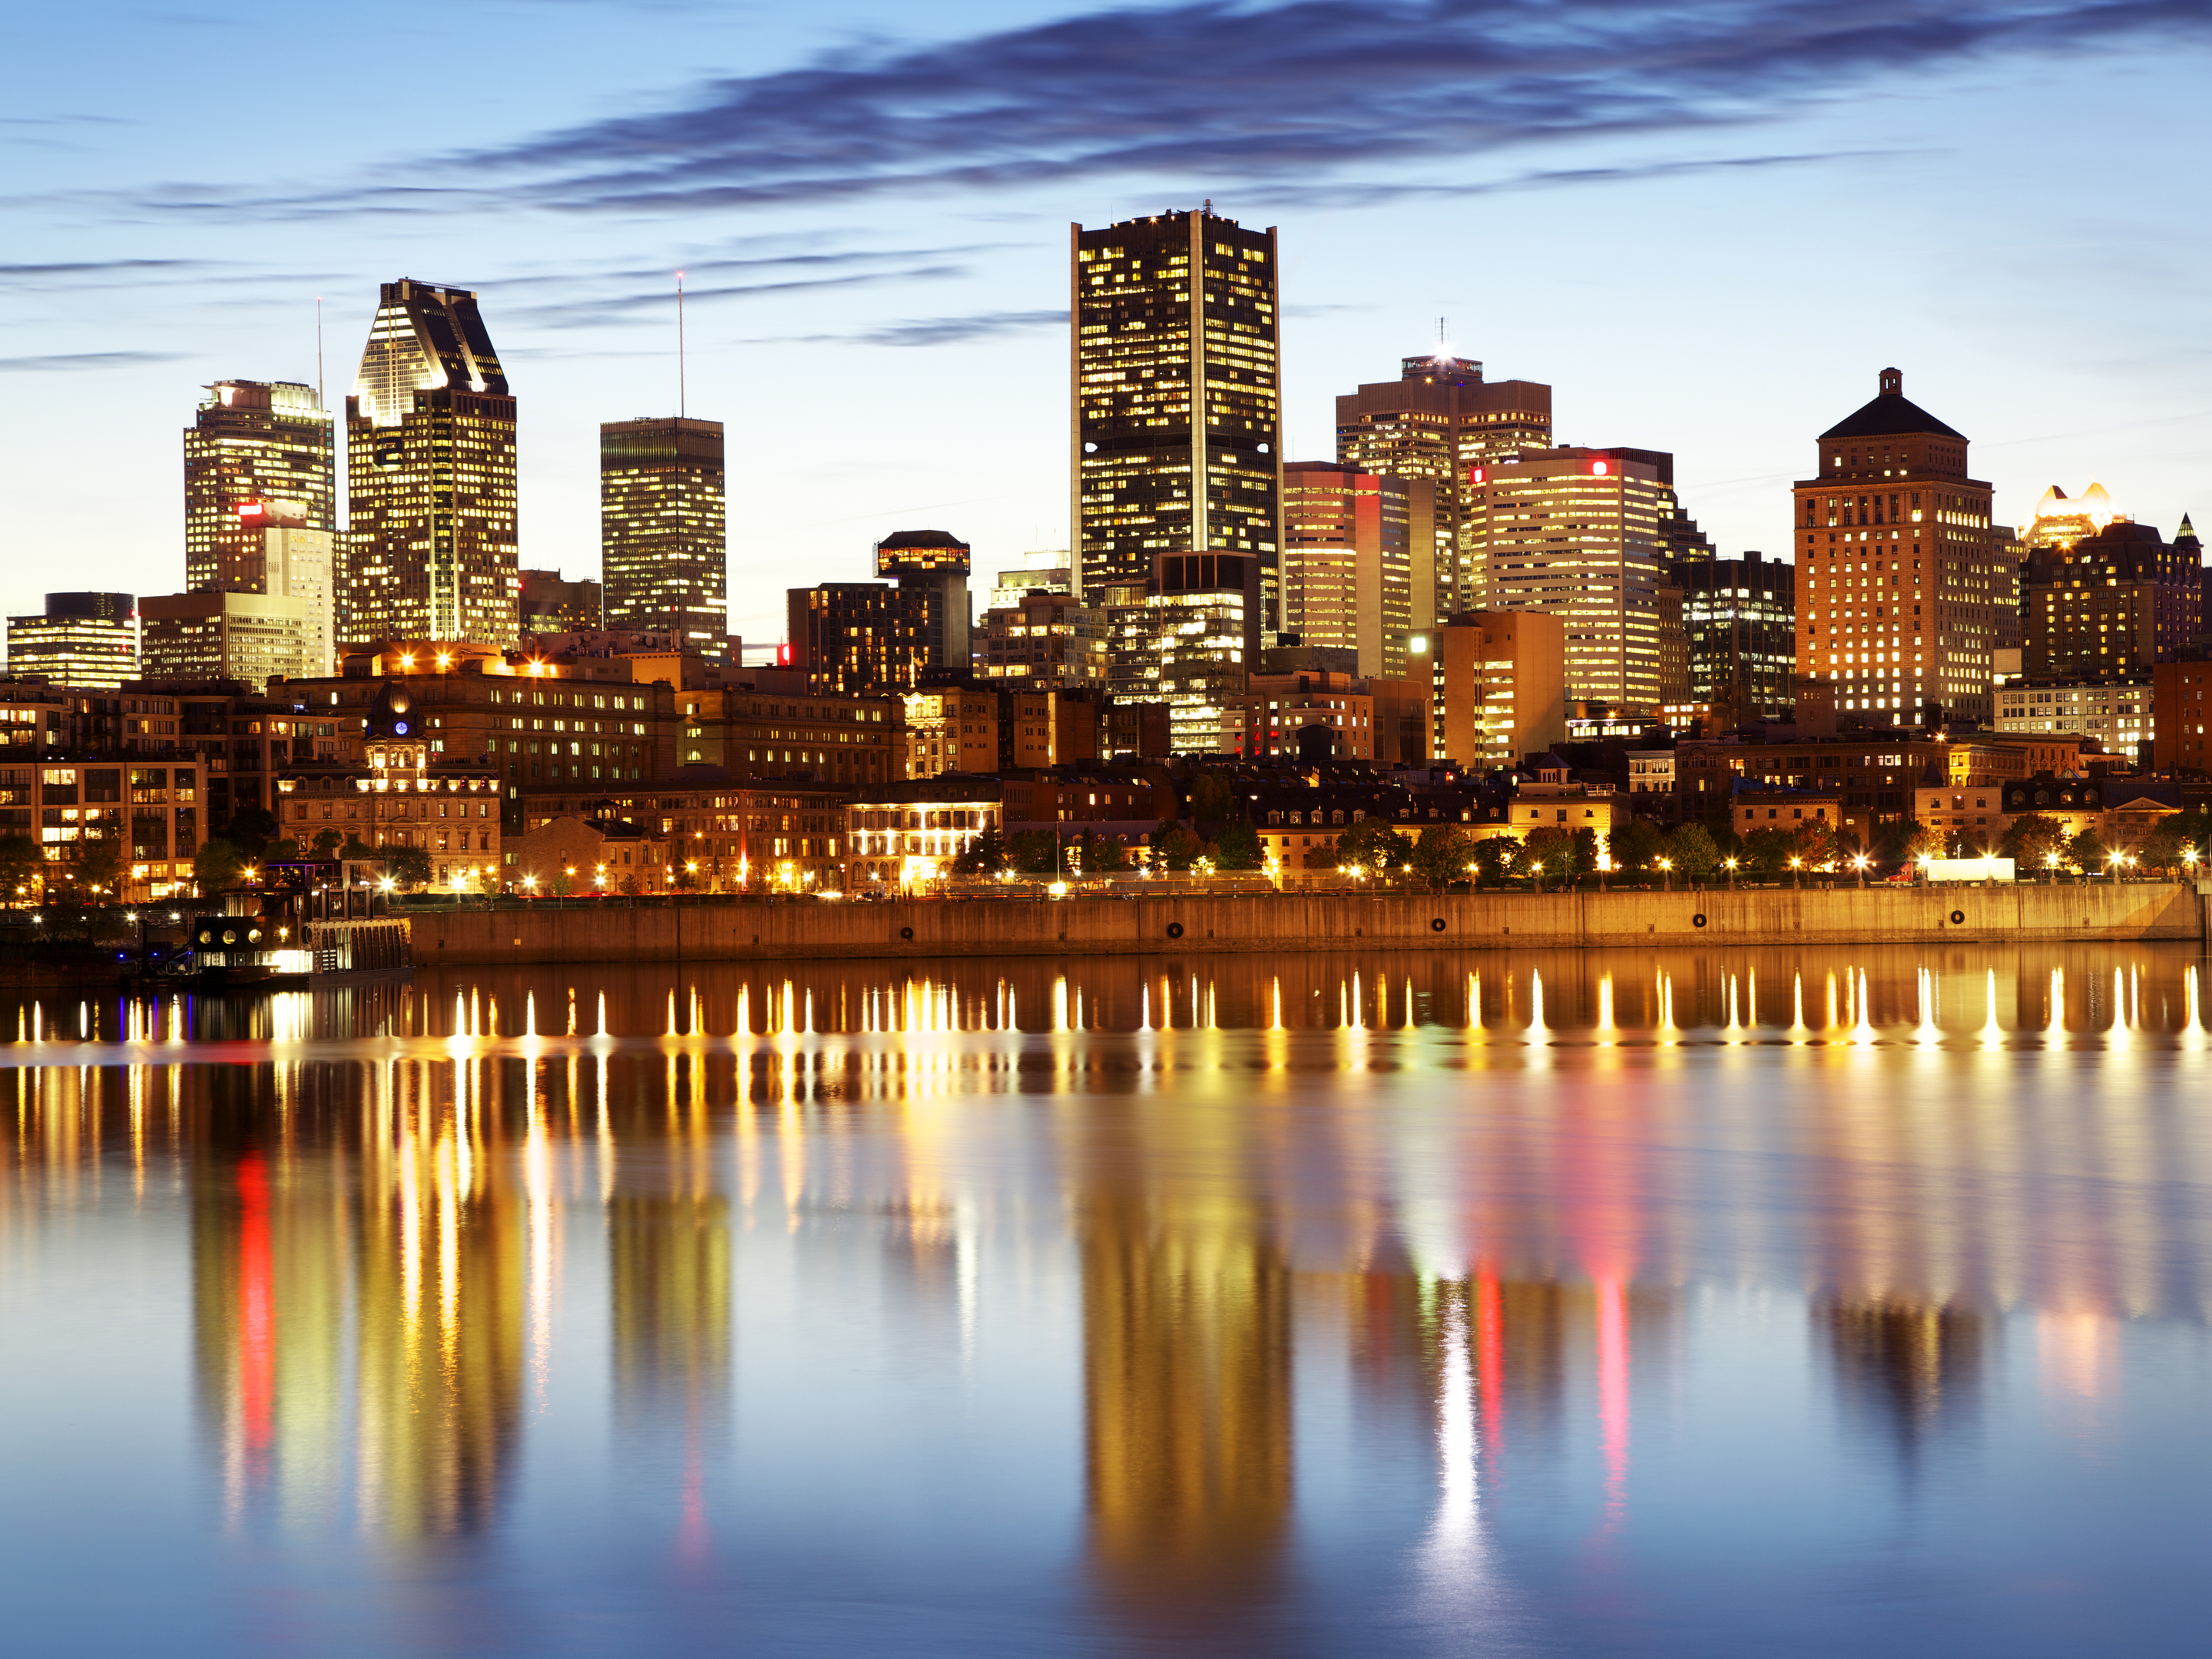 Montreal skyline and Saint Laurent river at dusk